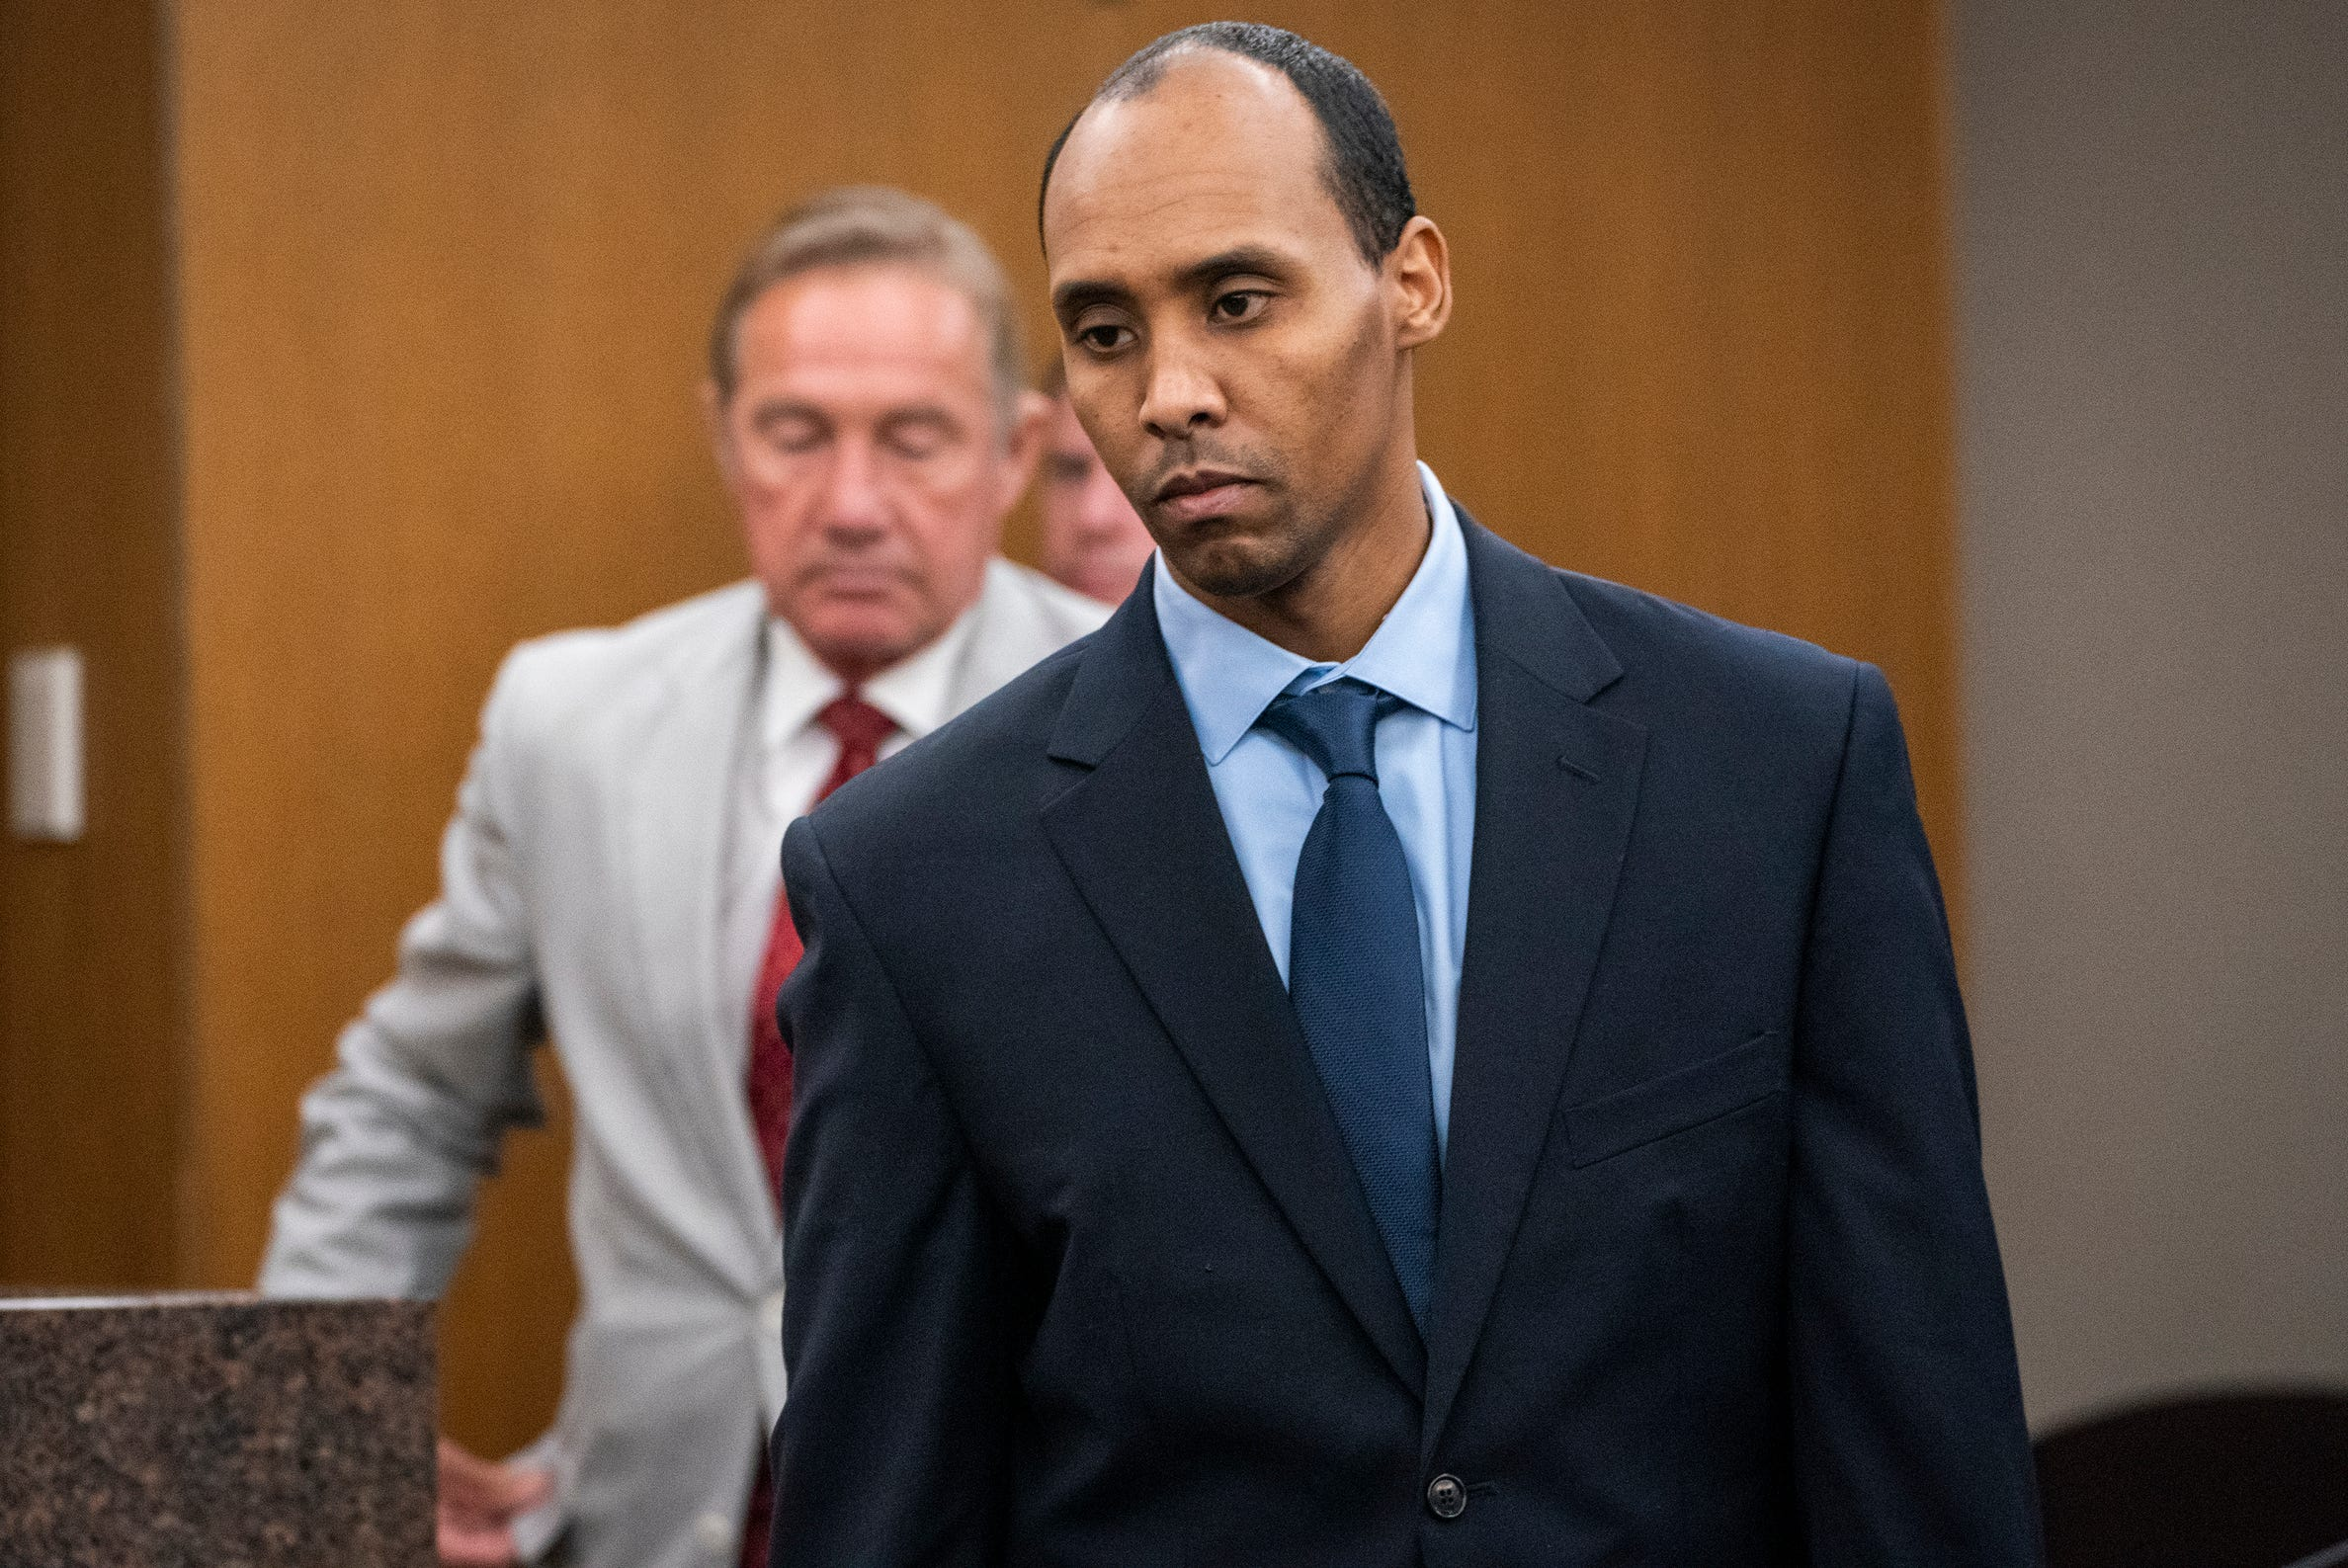 Justices to decide if charge fits Minneapolis police killing 2